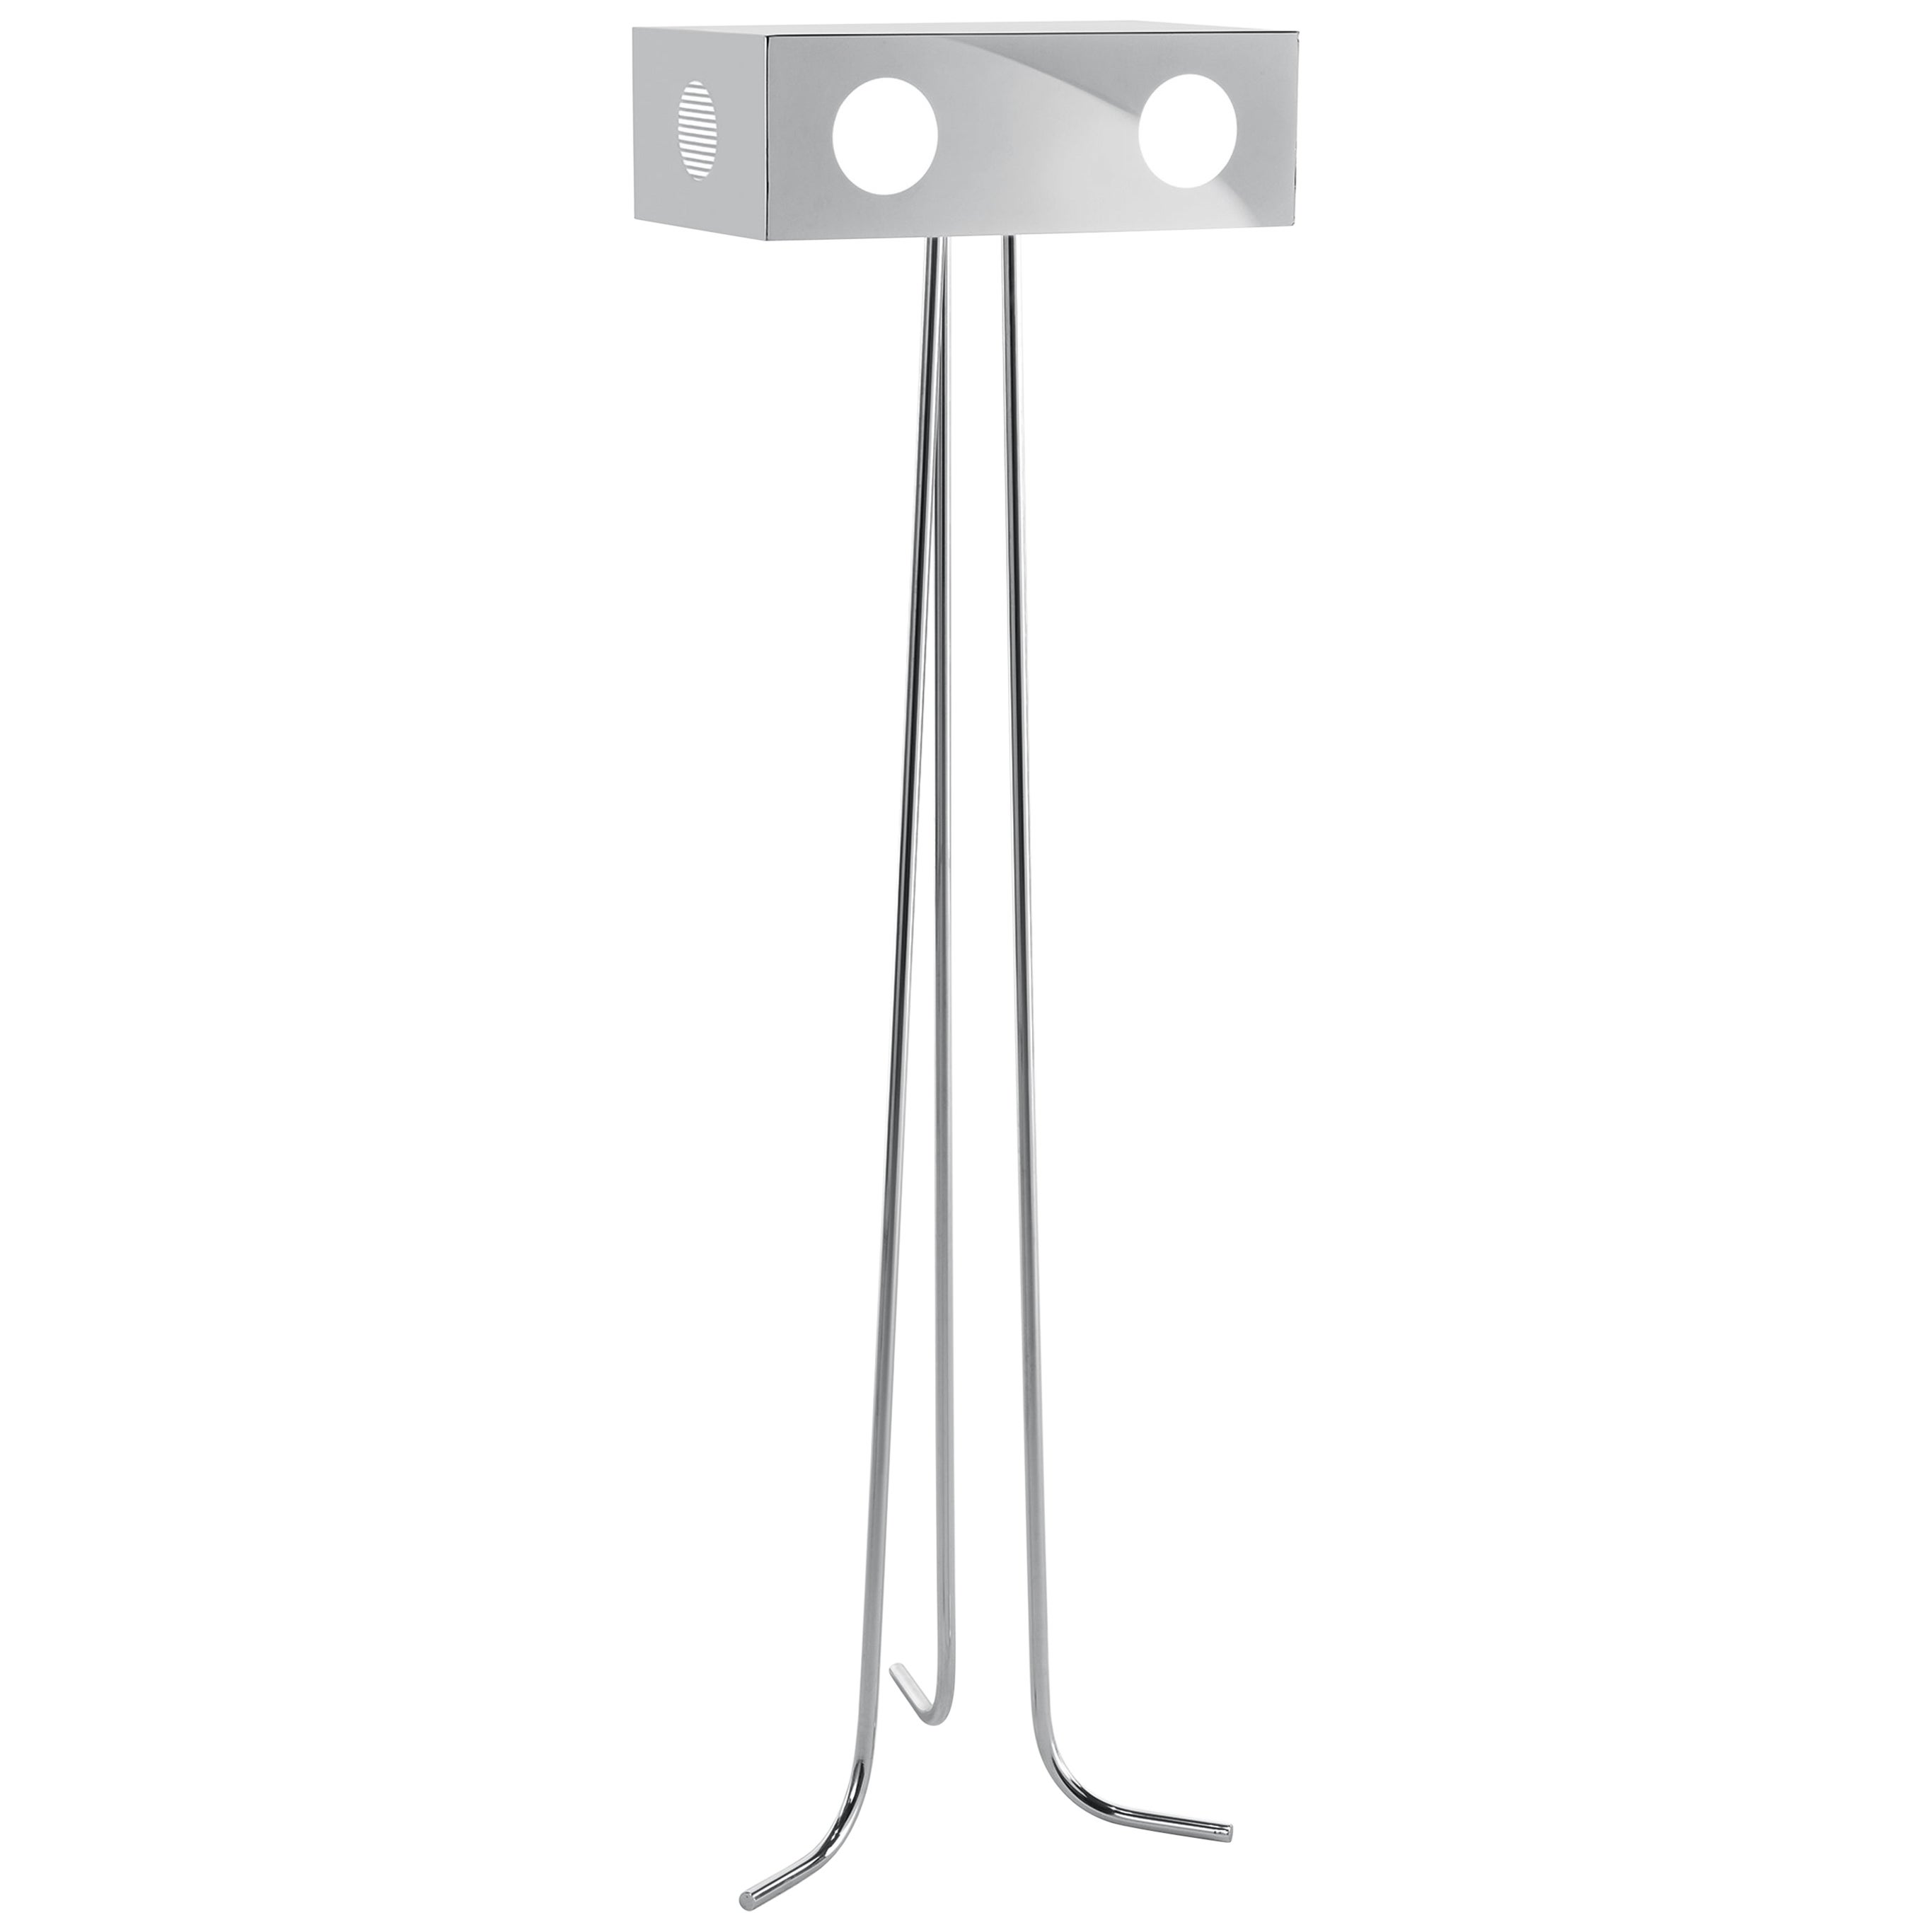 JCP Universe Threeve Floor Lamp by Richard Hutten